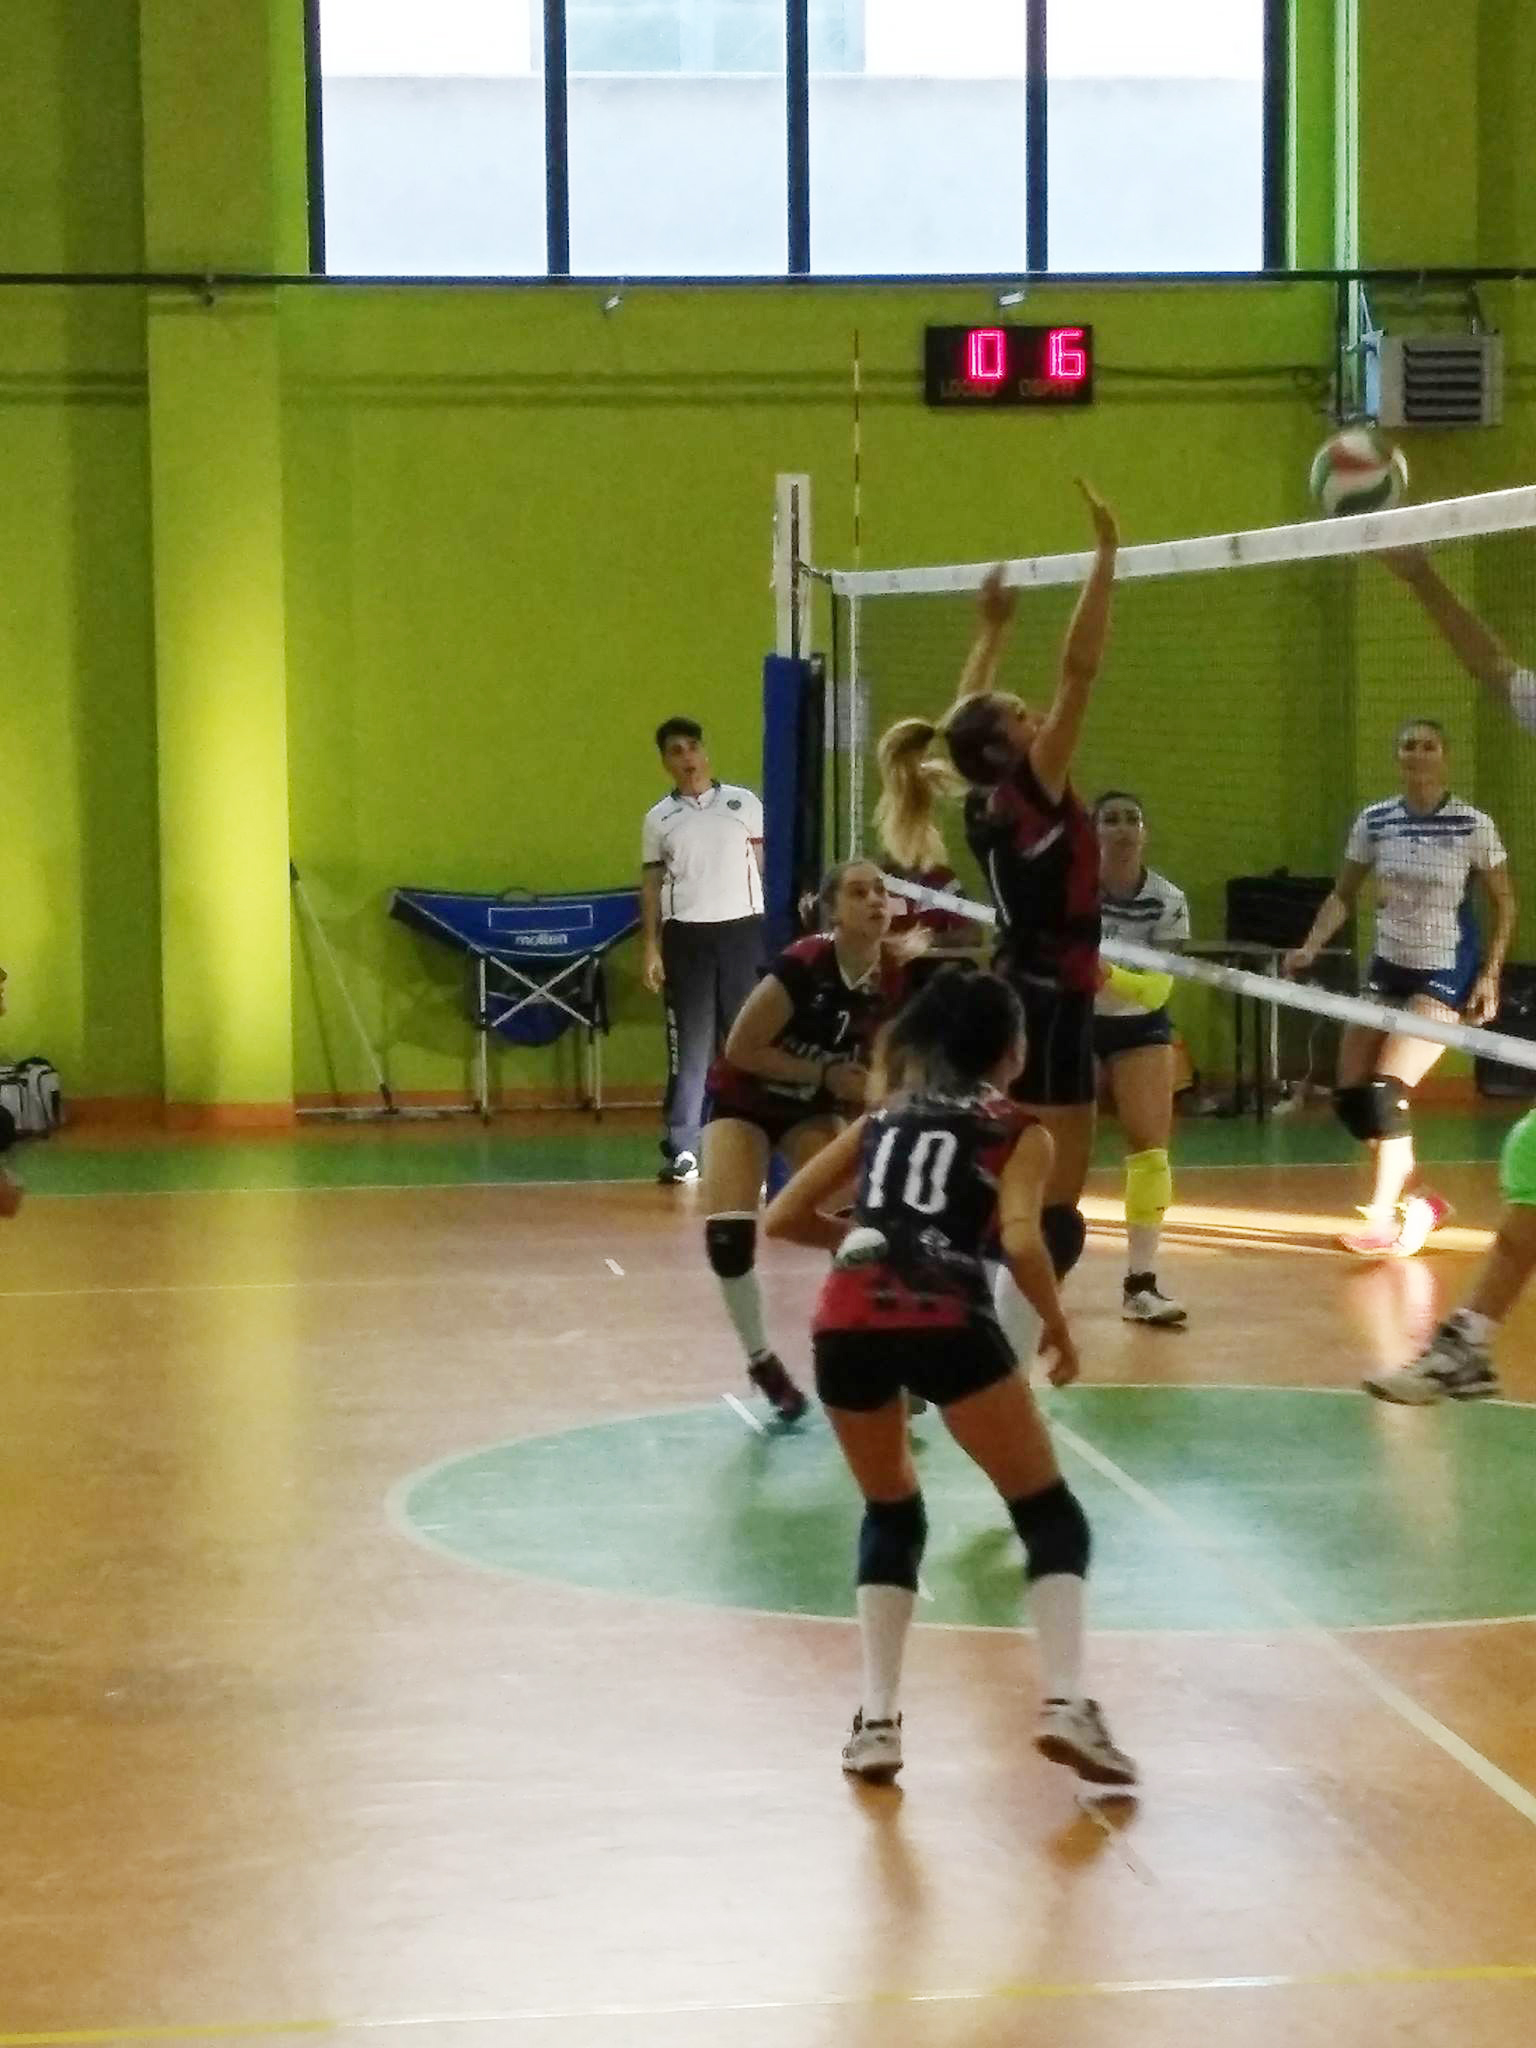 Intent Volley. La Omnia Volley batte le ragazze di Zagarolo 3-1